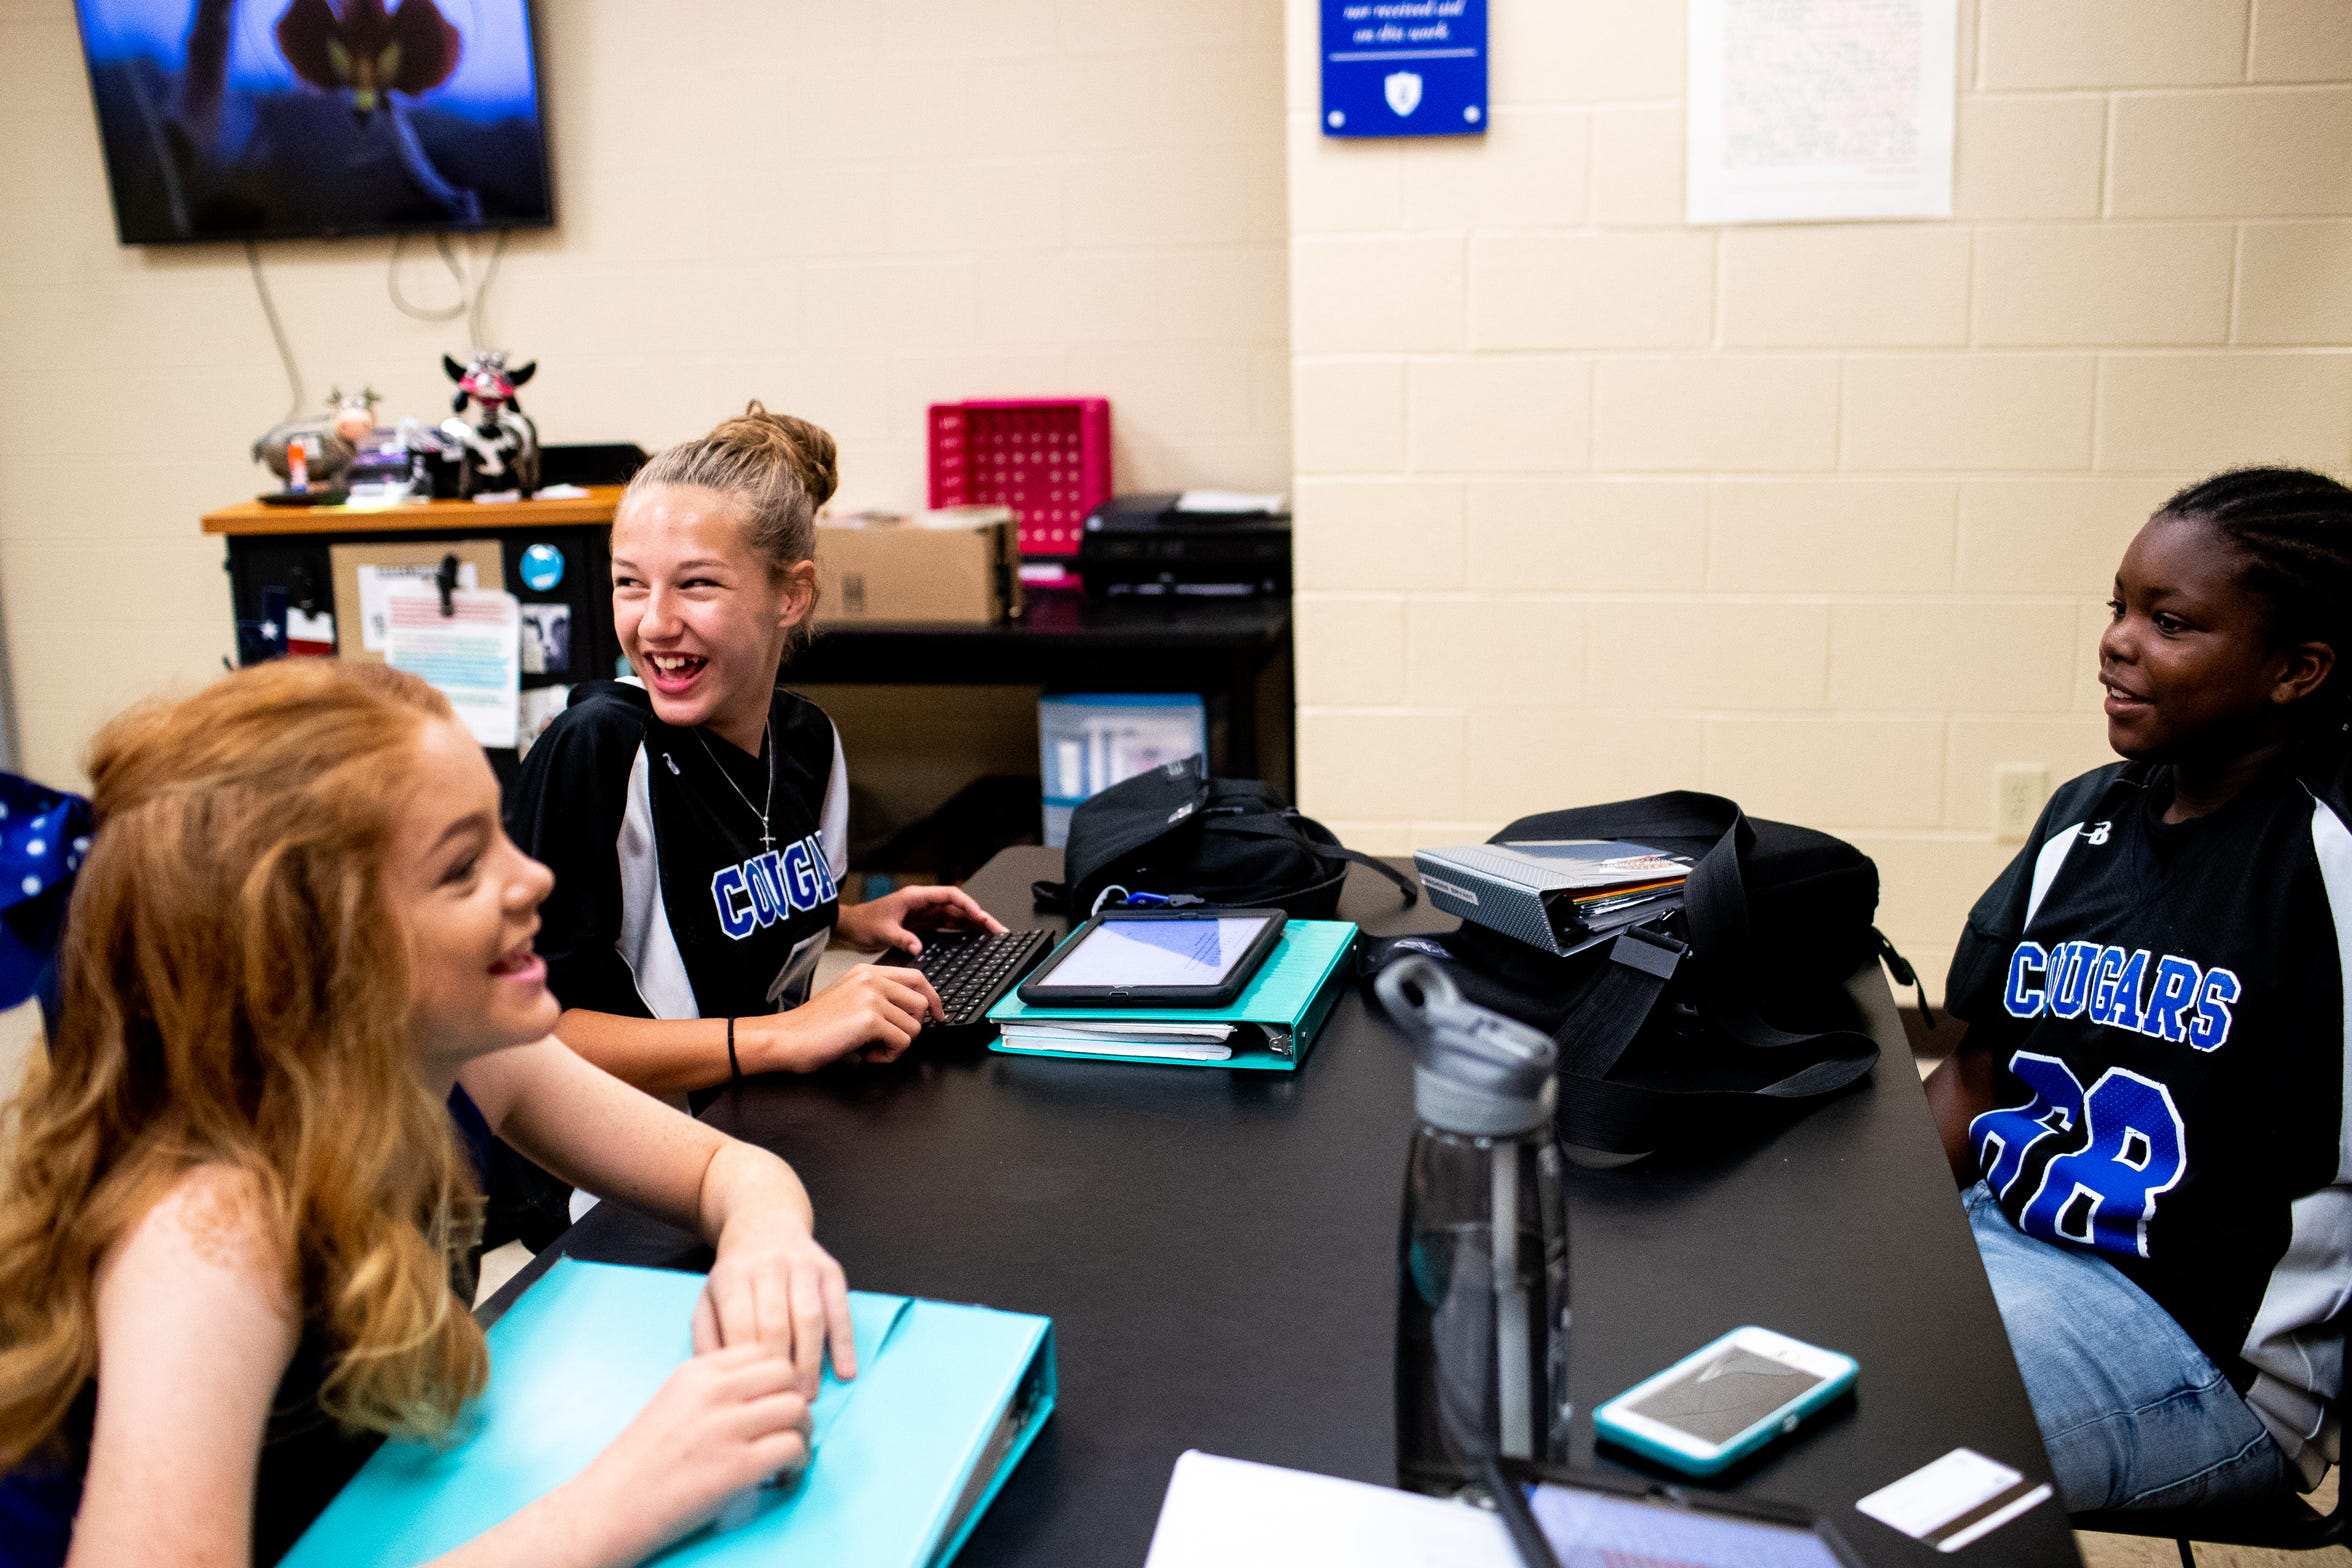 """Elizabeth Cundiff and Madisen Bryant, right, wait for class to begin while wearing their game day jerseys at Clarksville Academy Thursday, Oct. 4, 2018, in Clarksville, Tenn. Madisen feels like they are """"rocking that jersey,"""" where as other people think Elizabeth got the jersey by dating a male football player."""